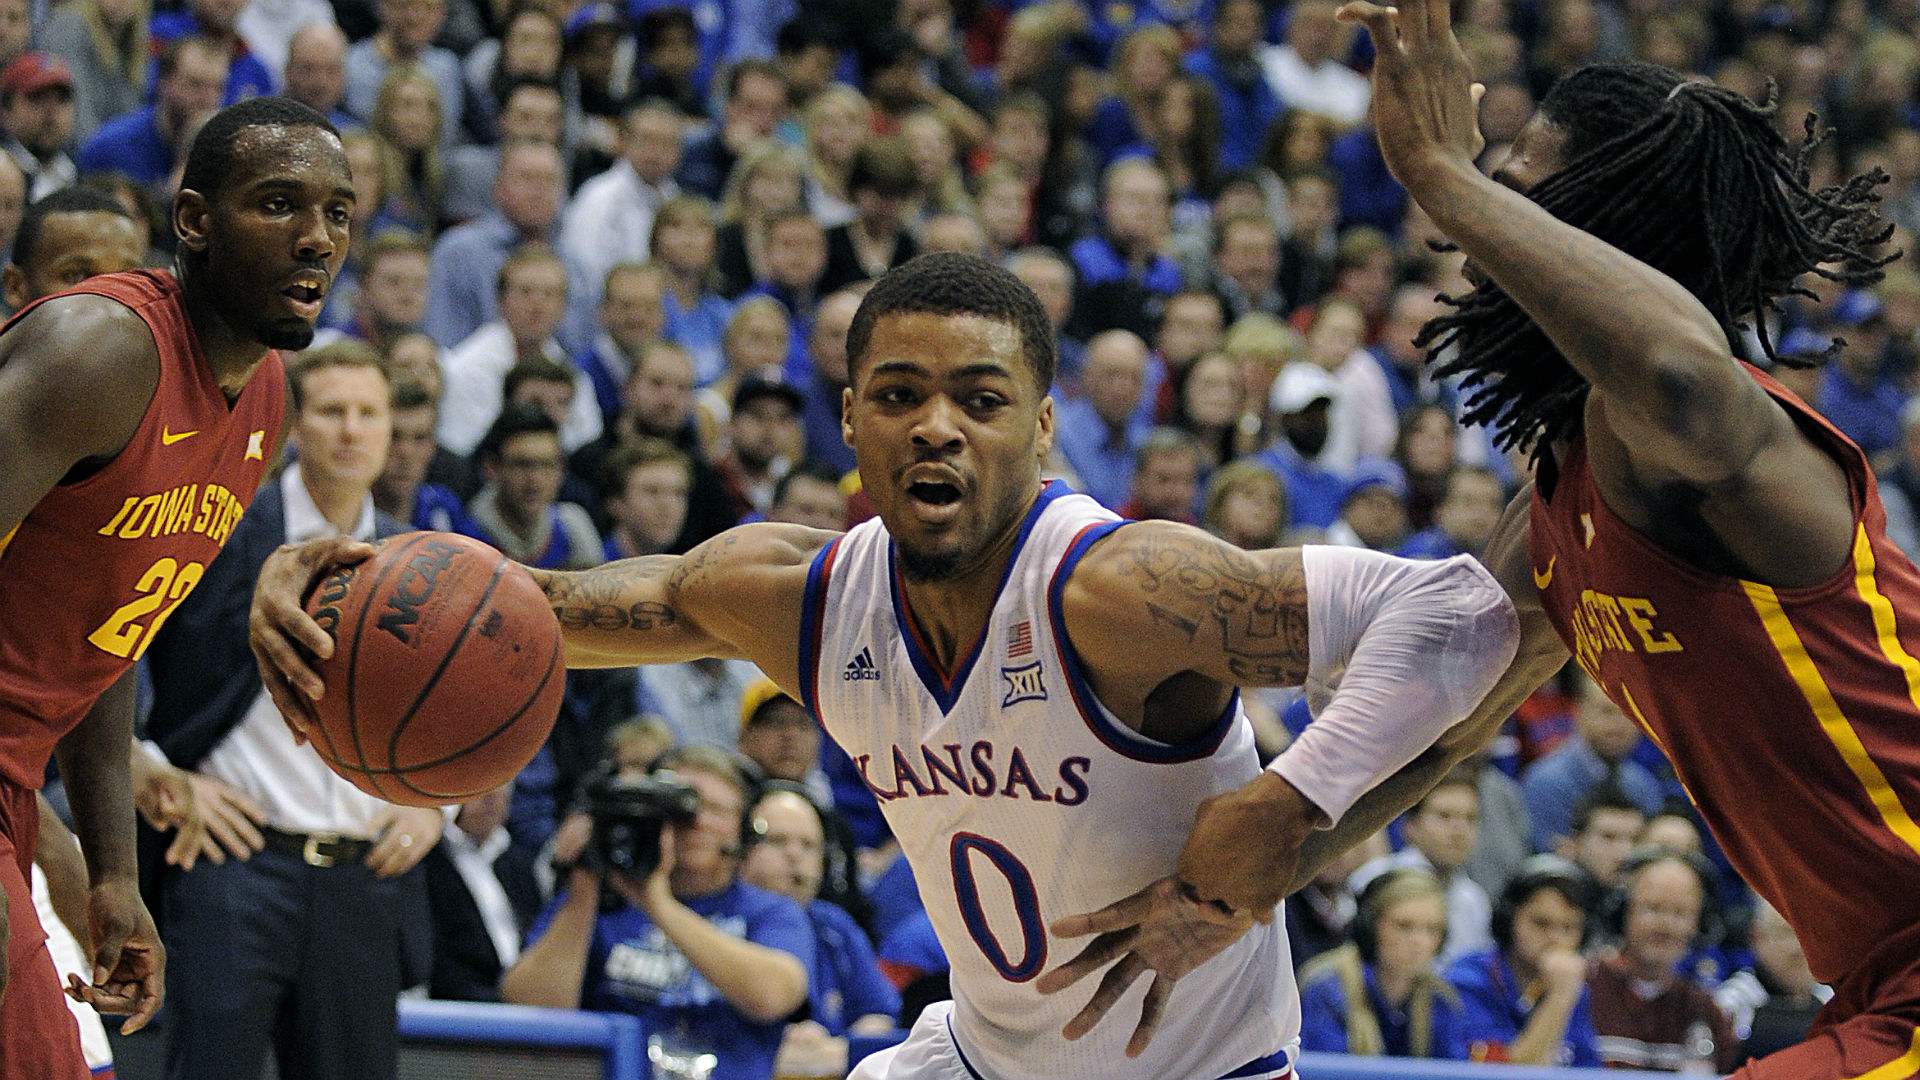 College basketball betting lines and picks – Baylor looks for revenge at Kansas